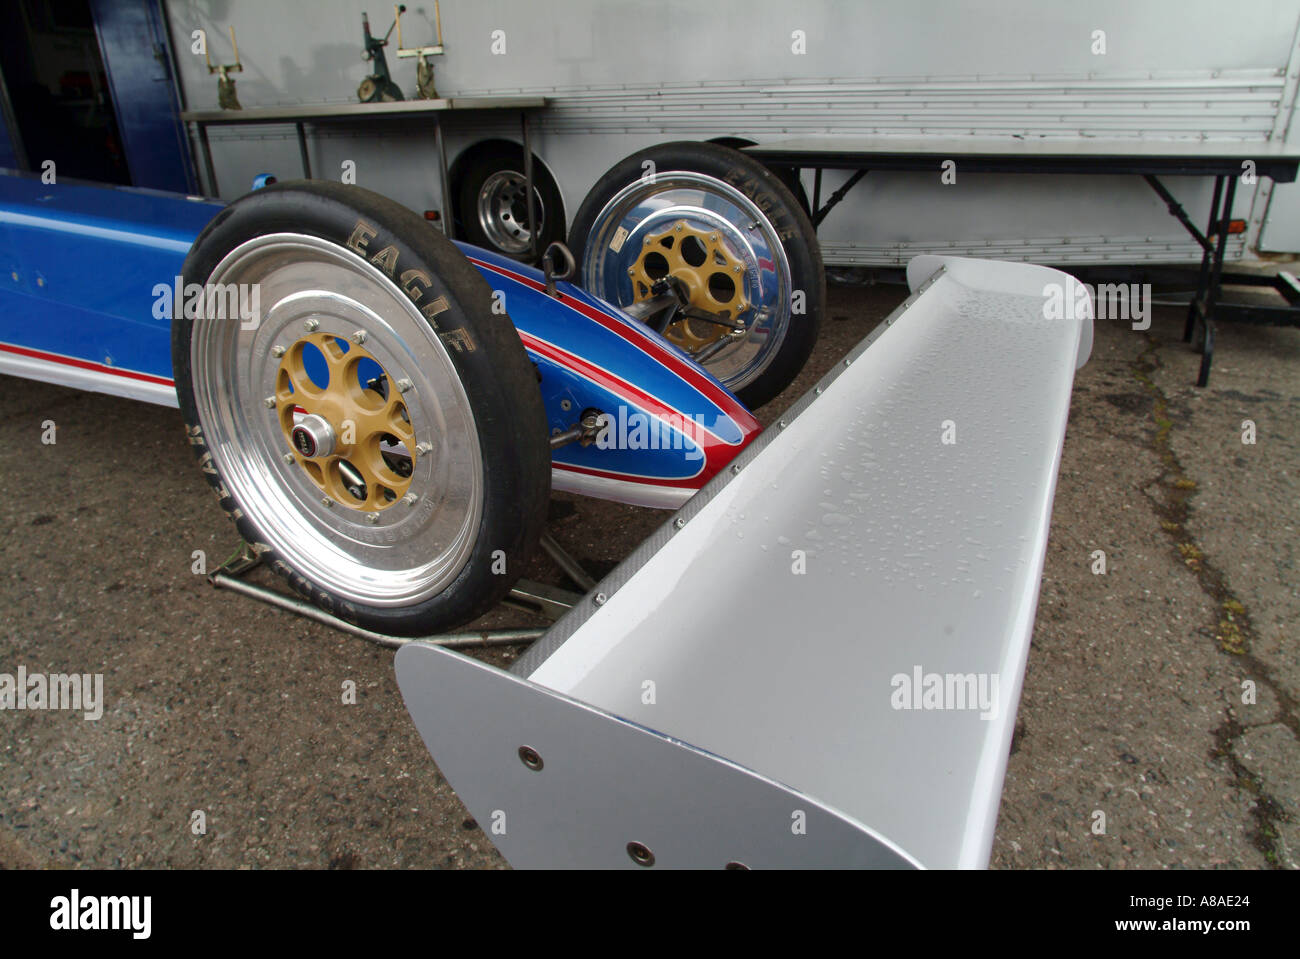 front wing of a top fuel dragster aerofoil wing downforce aerodynmanic - Stock Image